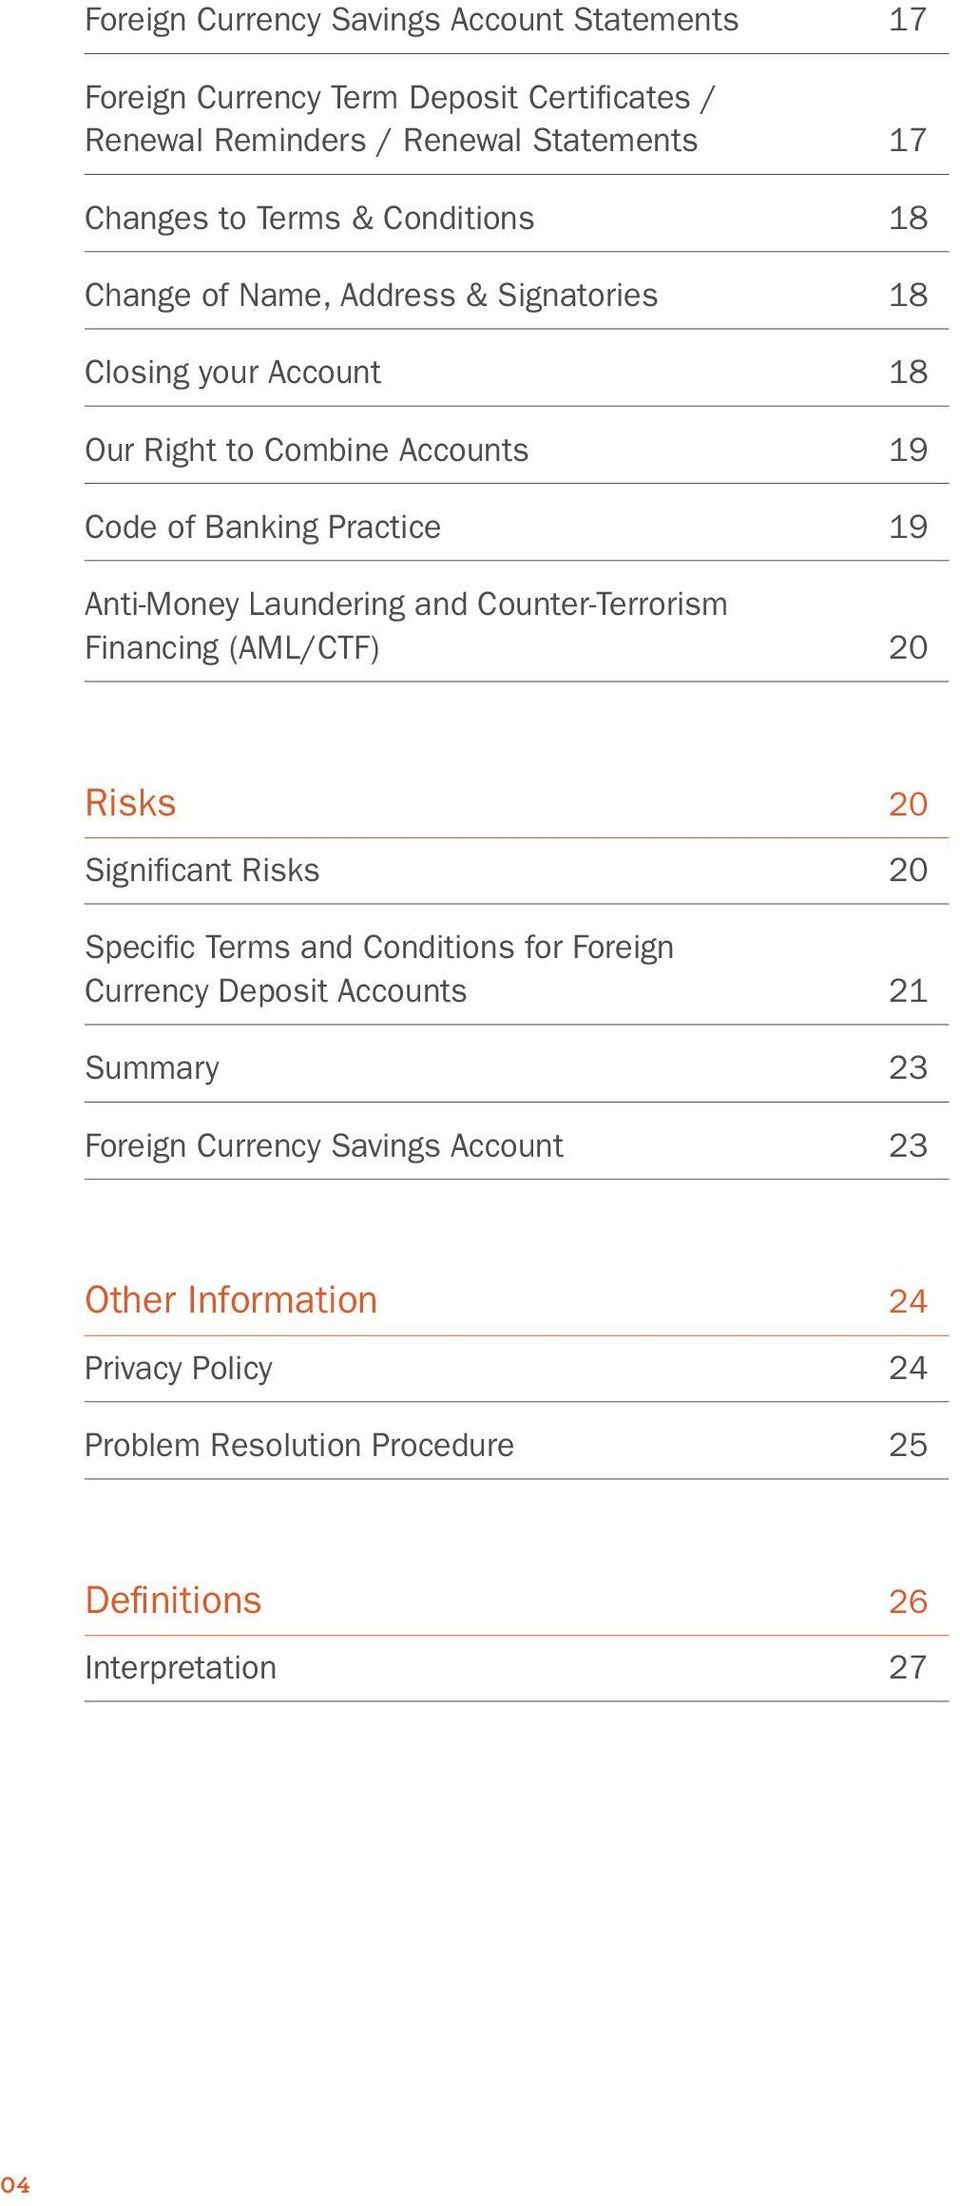 Laundering and Counter-Terrorism Financing (AML/CTF) 20 Risks 20 Significant Risks 20 Specific Terms and Conditions for Foreign Currency Deposit Accounts